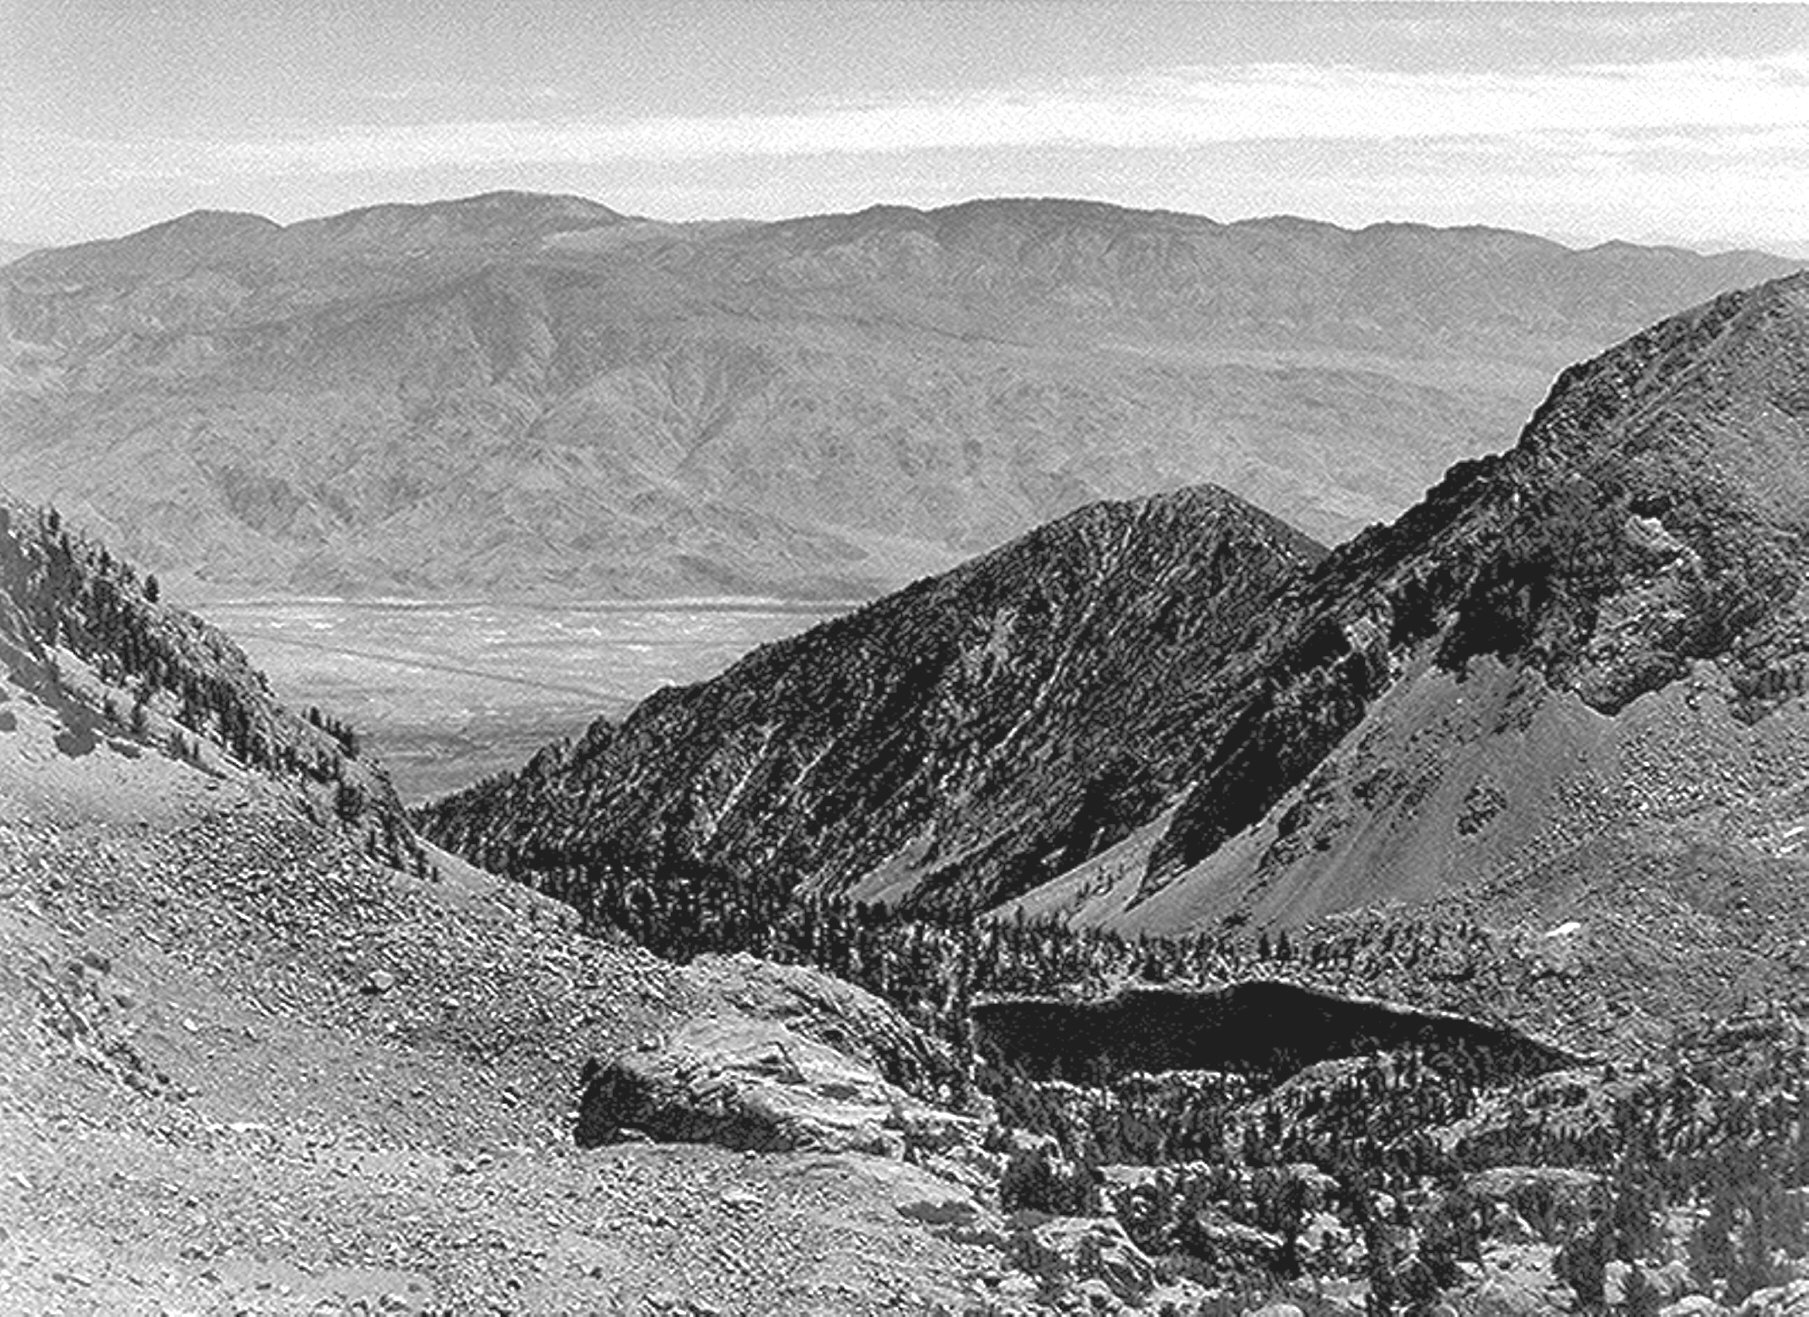 Owens valley from sawmill pass ansel adams pinterest for Ansel adams the mural project 1941 to 1942